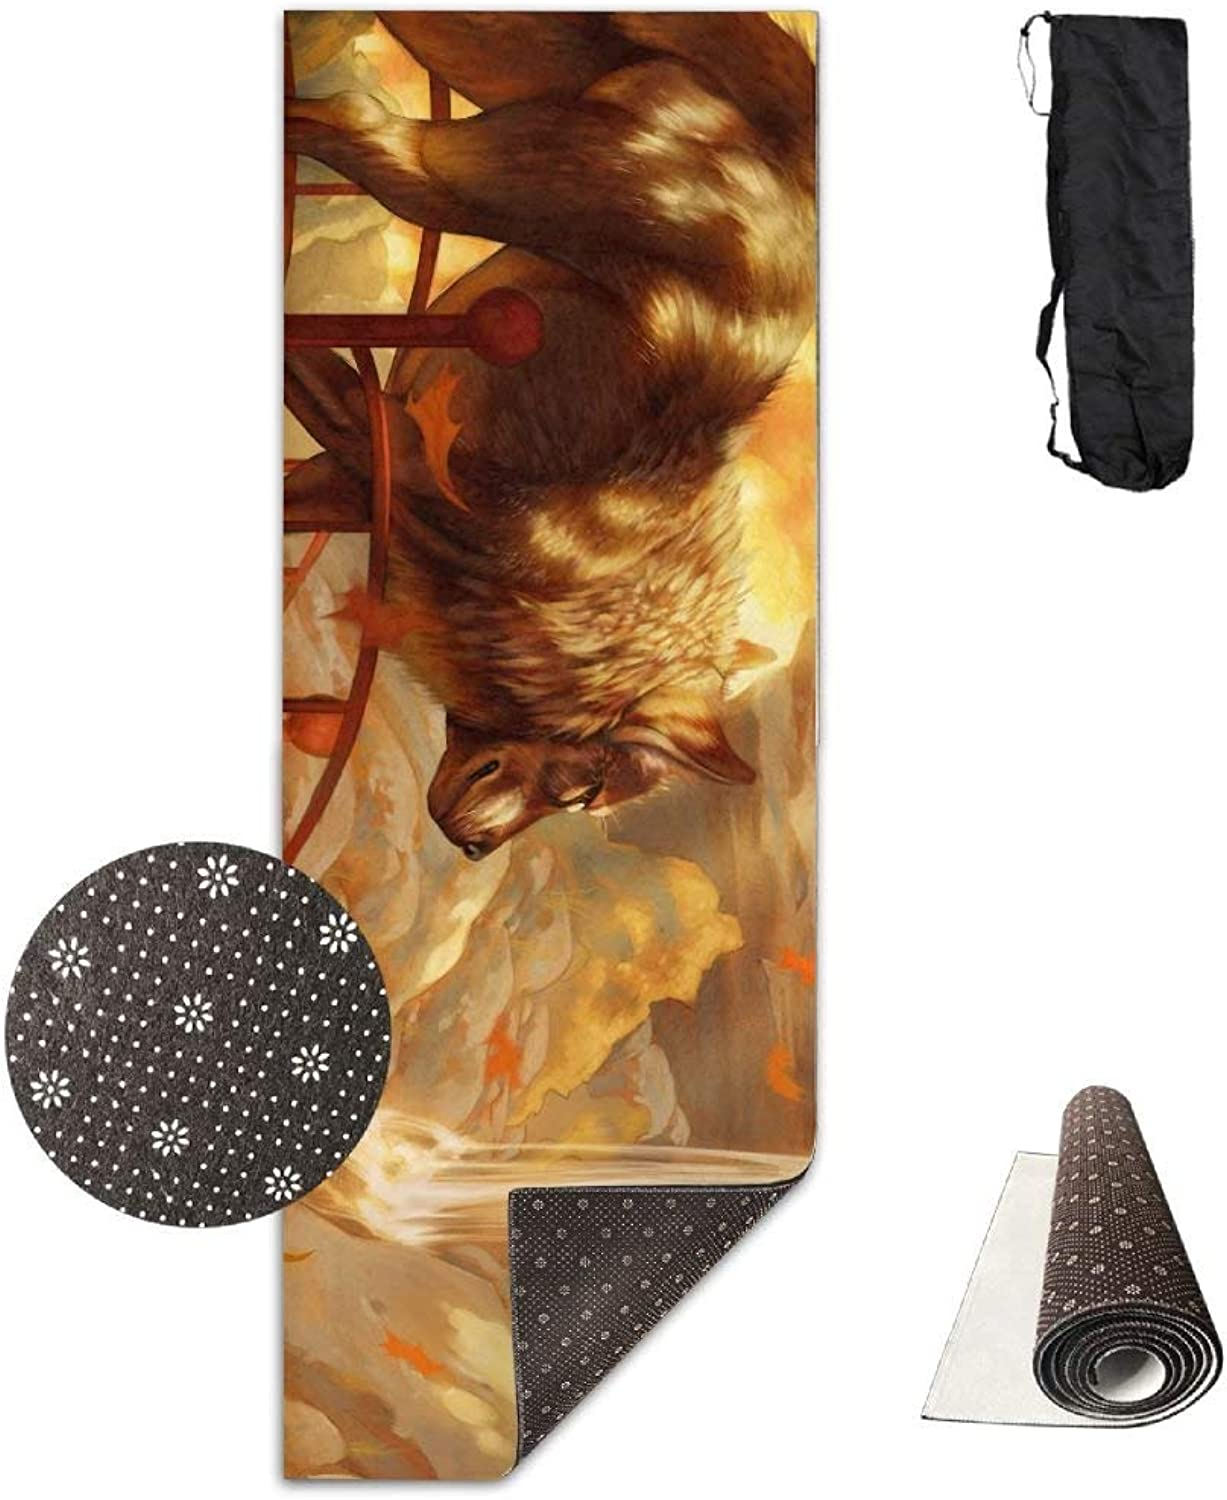 Ornate Fairy Wolf Premium Print Durable Concise Fun Printing Yoga Mat for Yoga, Workout, Fitness